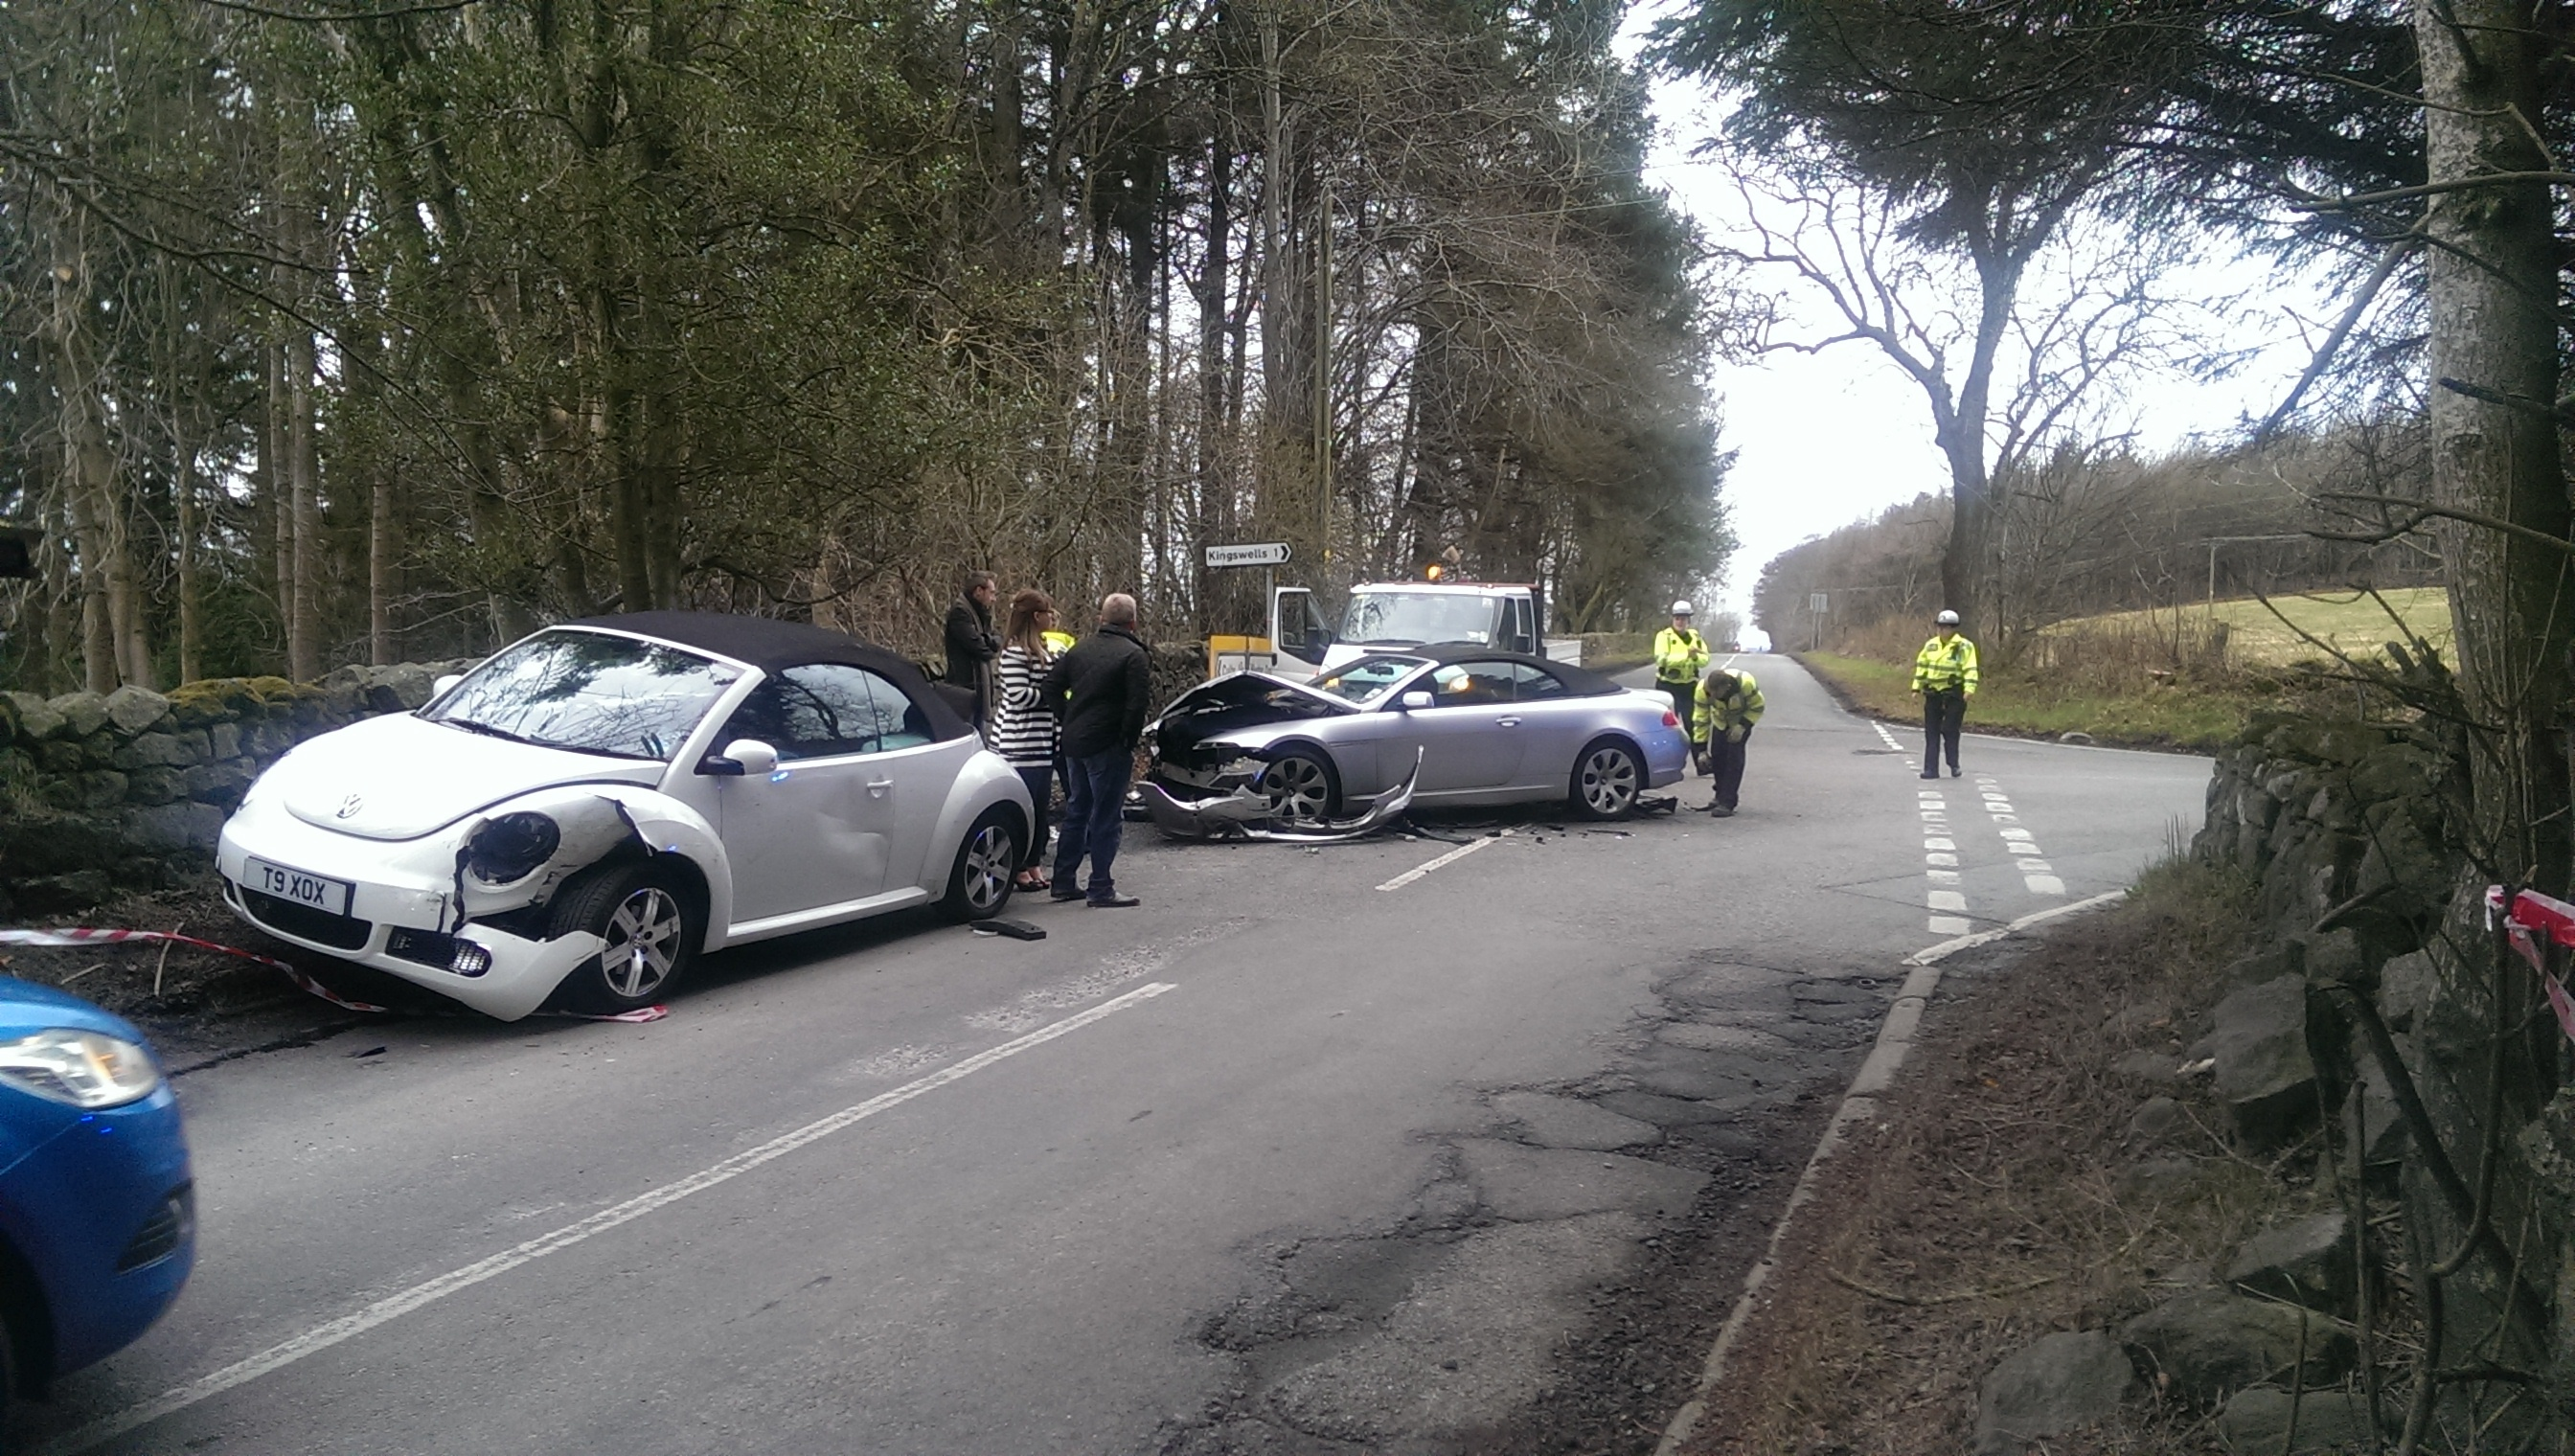 The crash happened on an unclassified road